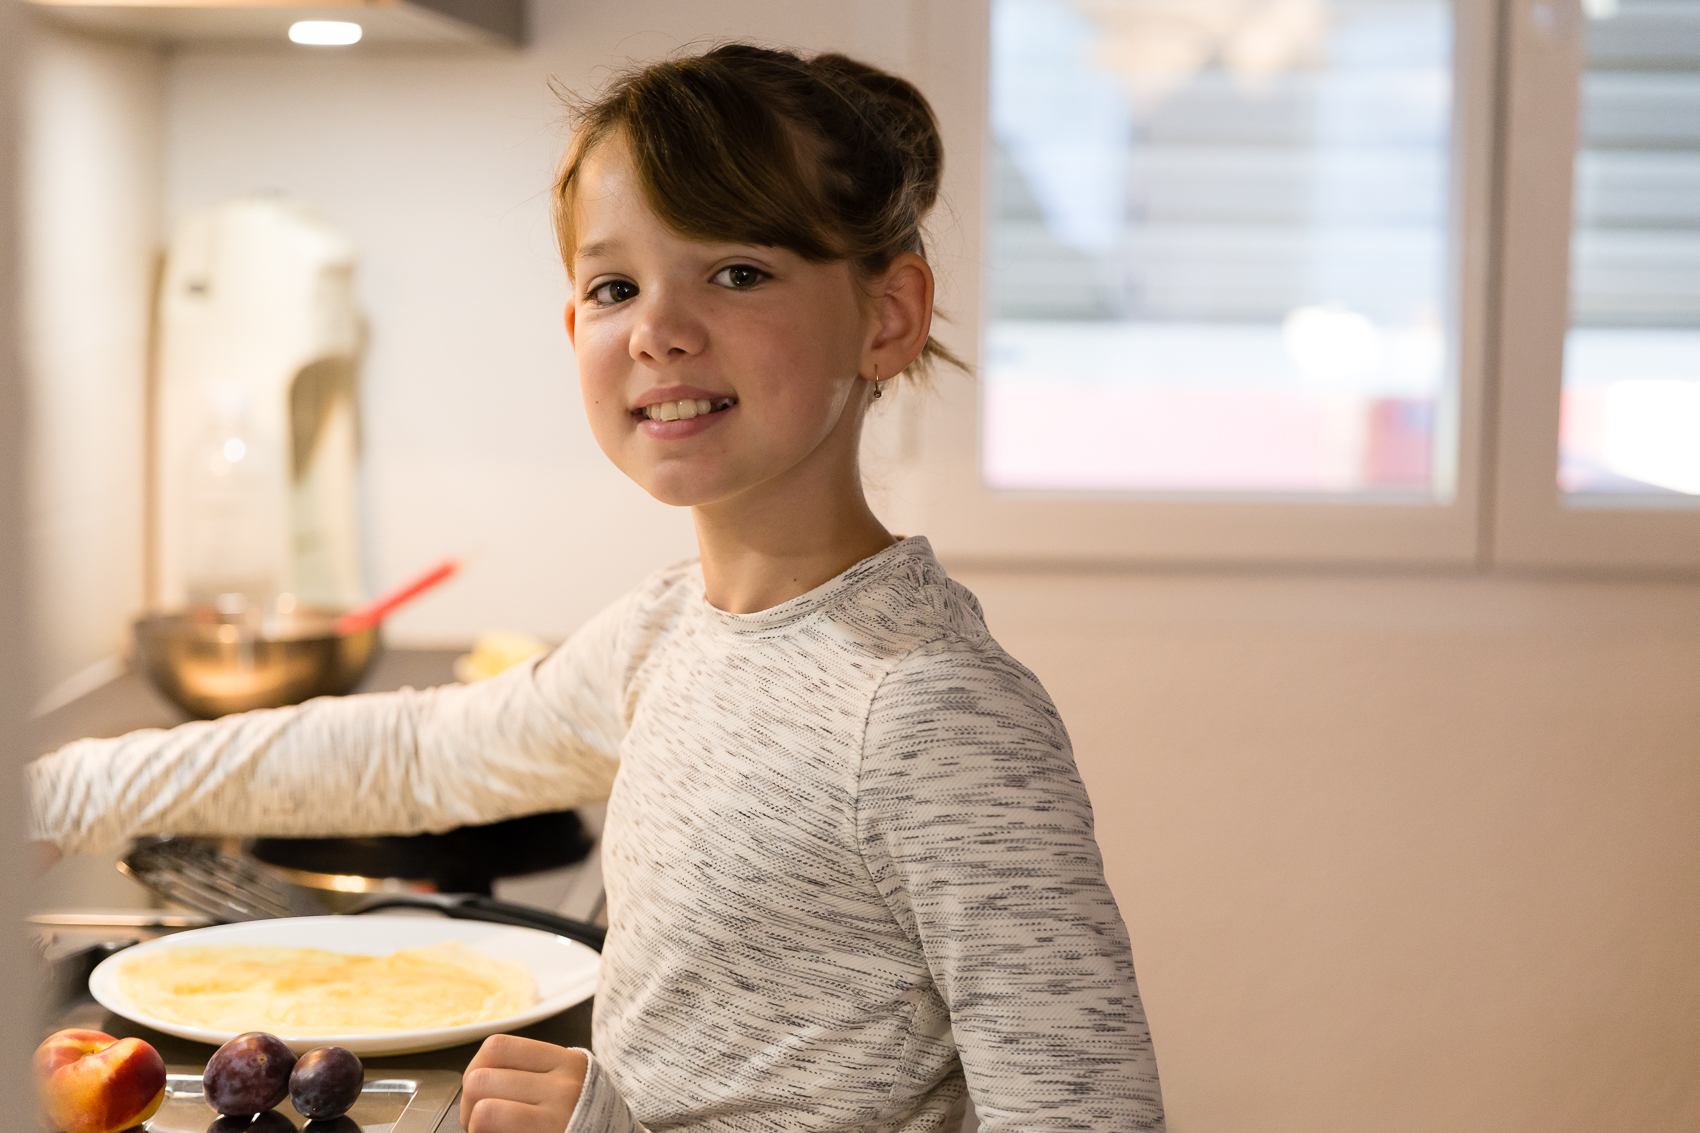 school mornings and they start getting up on their own - a morning of crepes and fresh fruit a must for the busy day ahead.